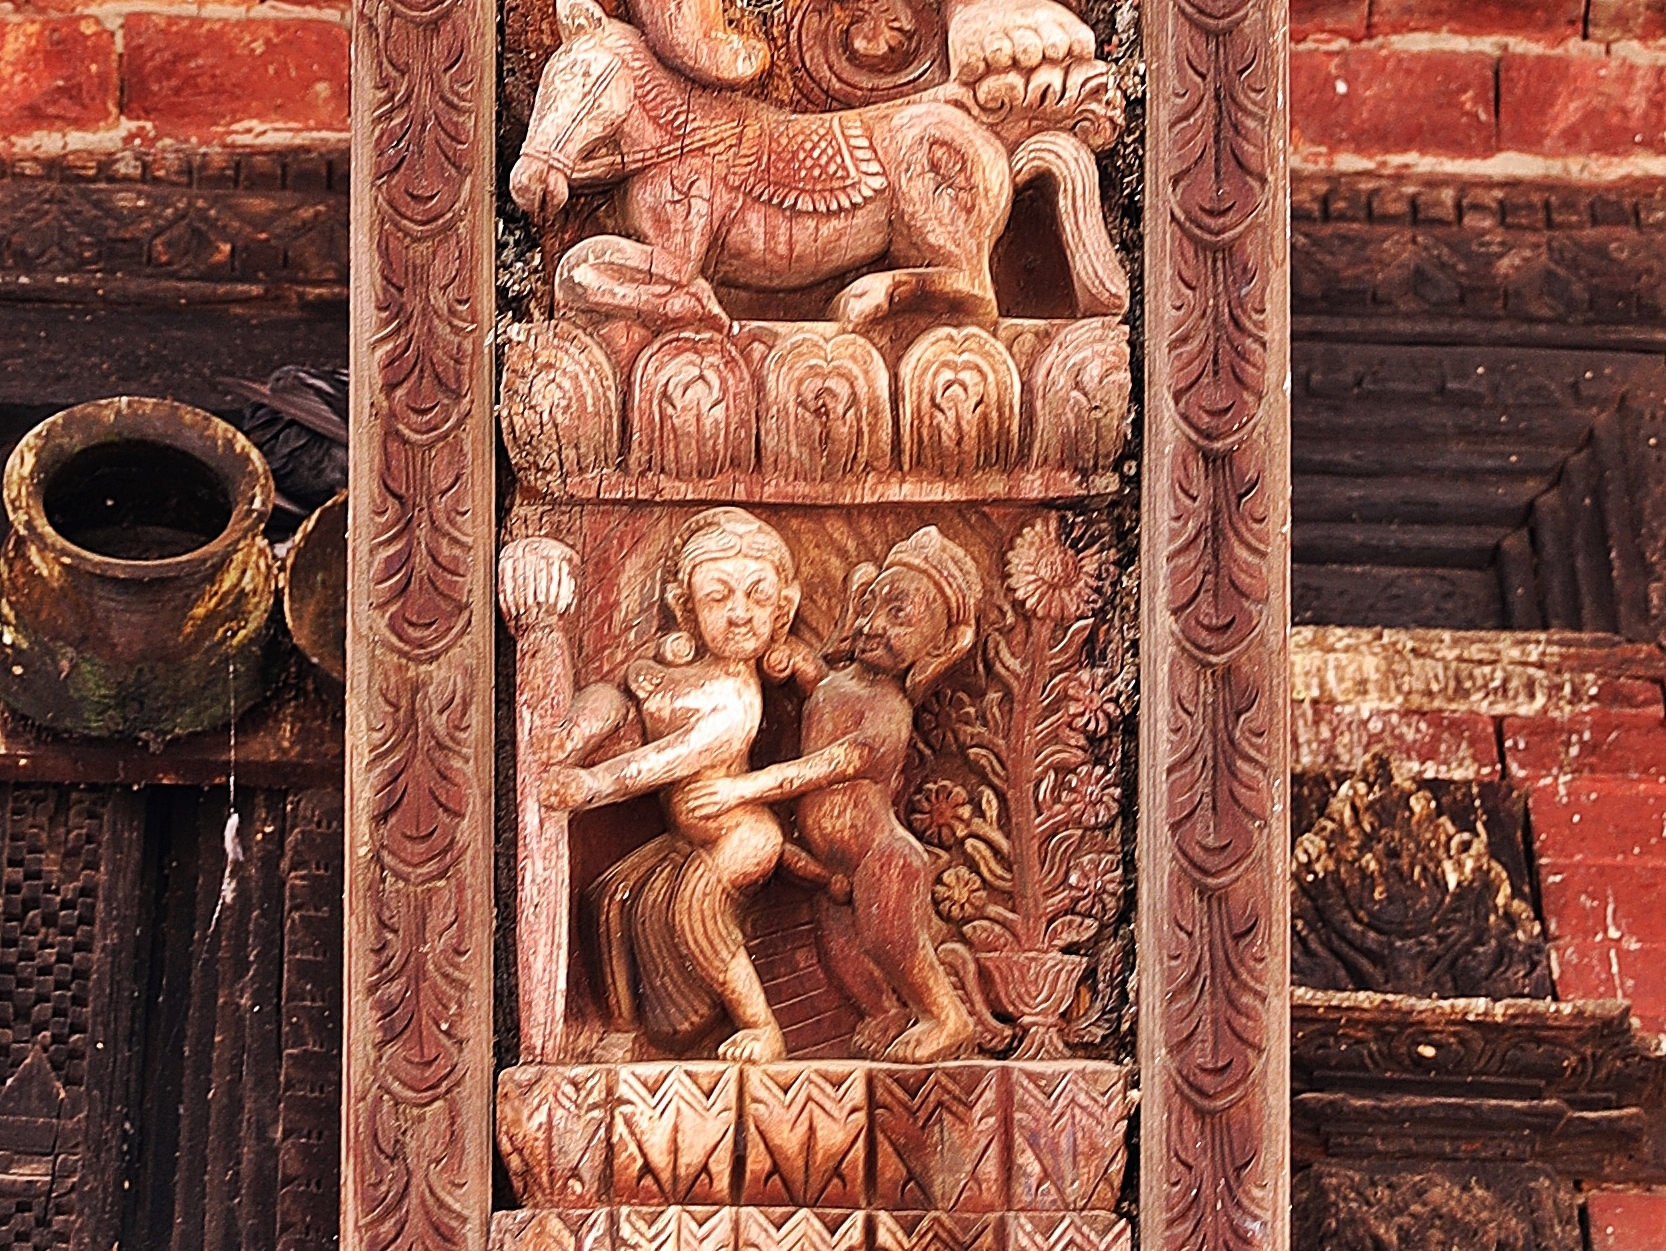 Erotic carvings on Pashupatinath temple, Bhaktapur